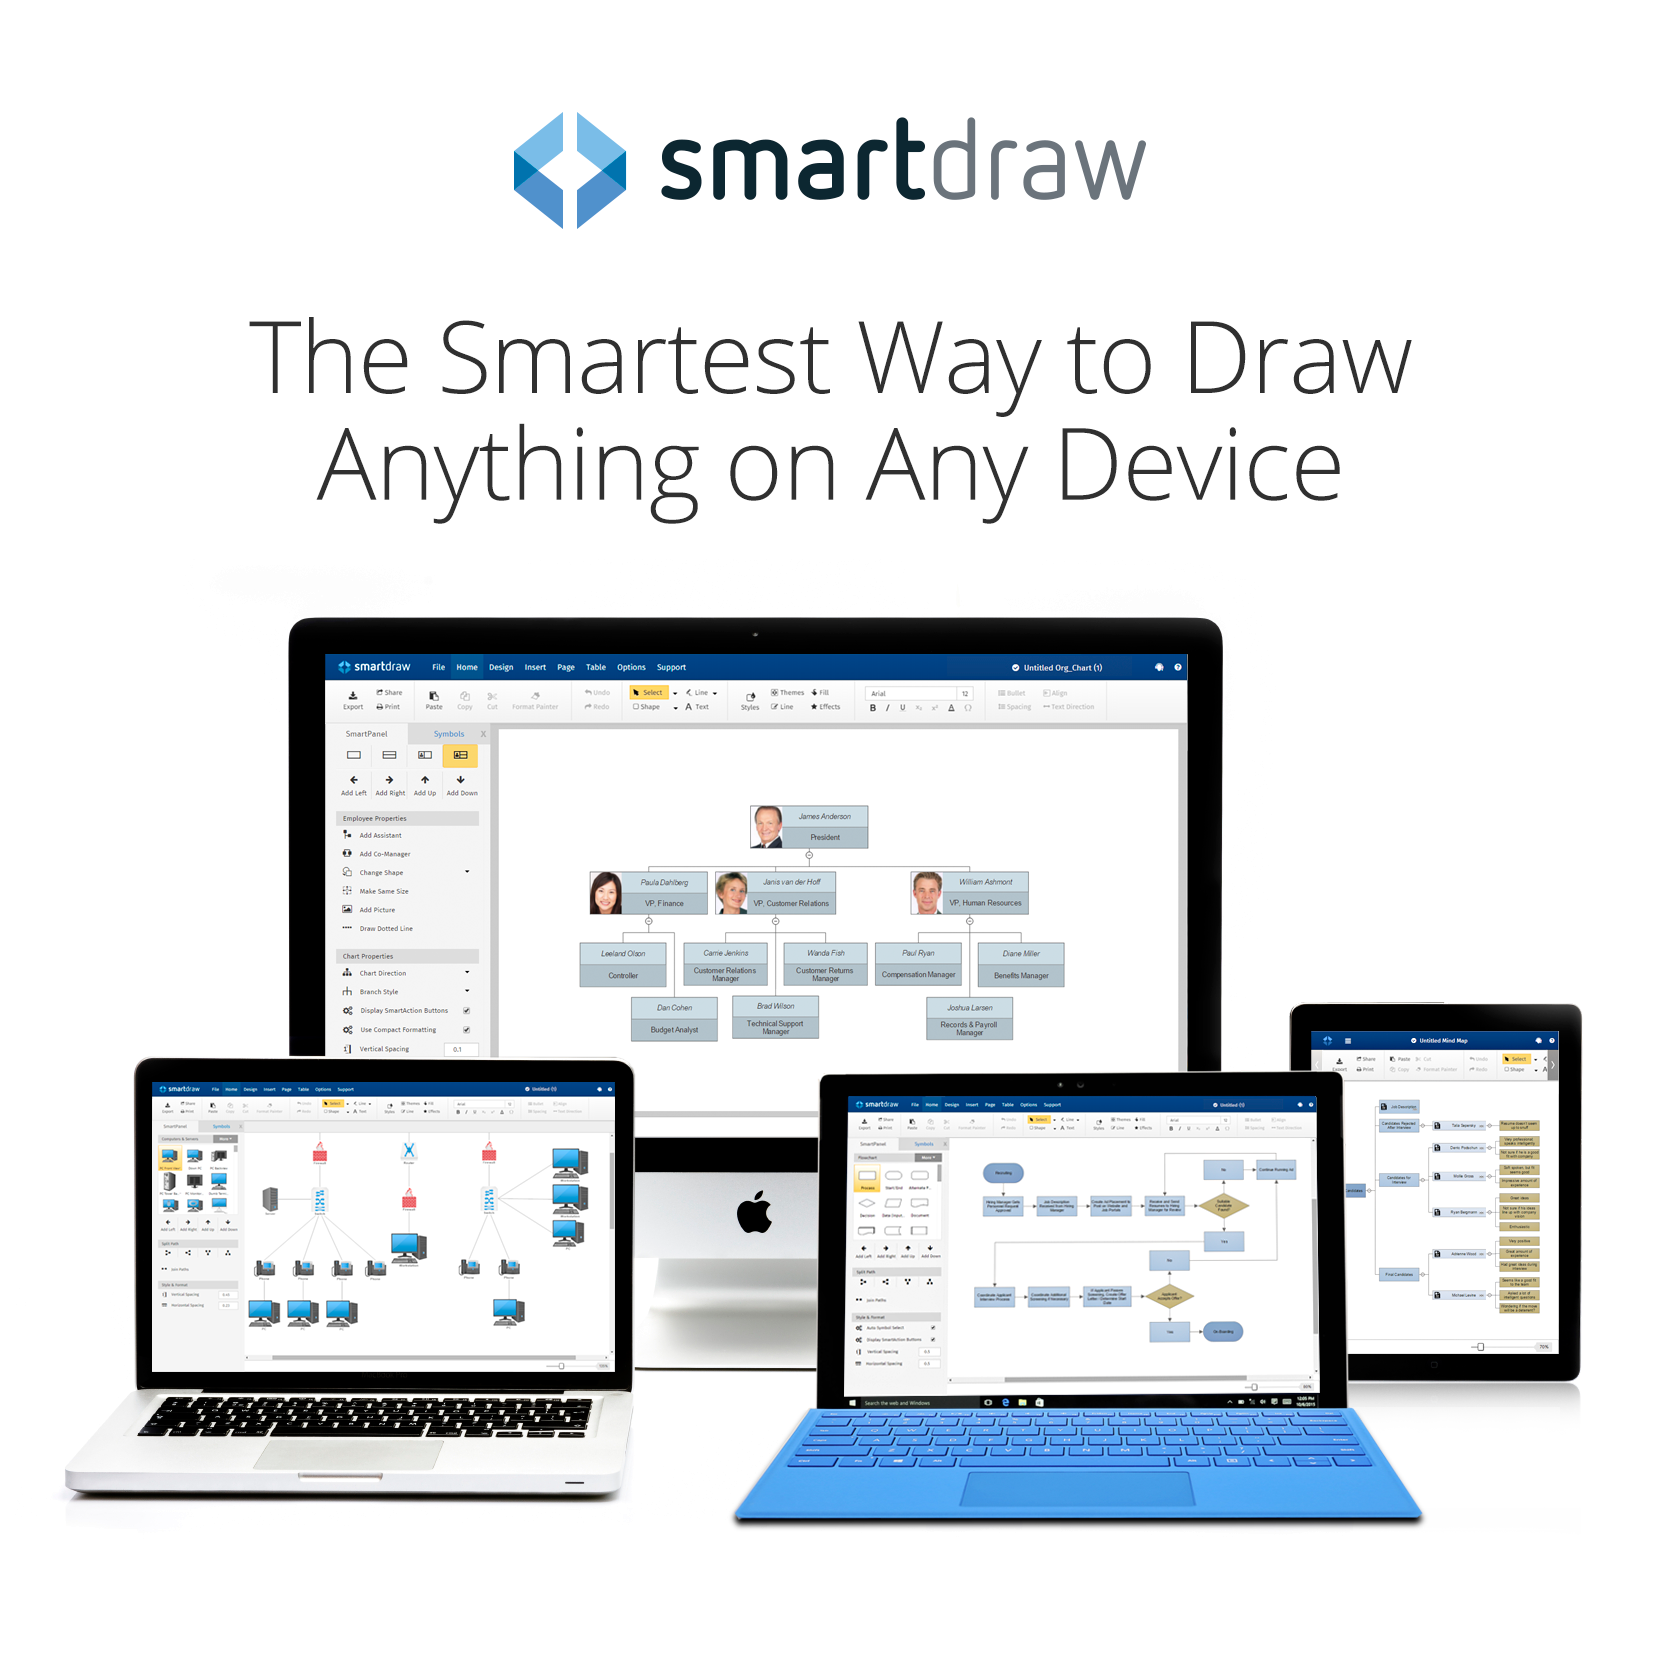 download smartdraw on multiple devices with logo - Smartdraw Support